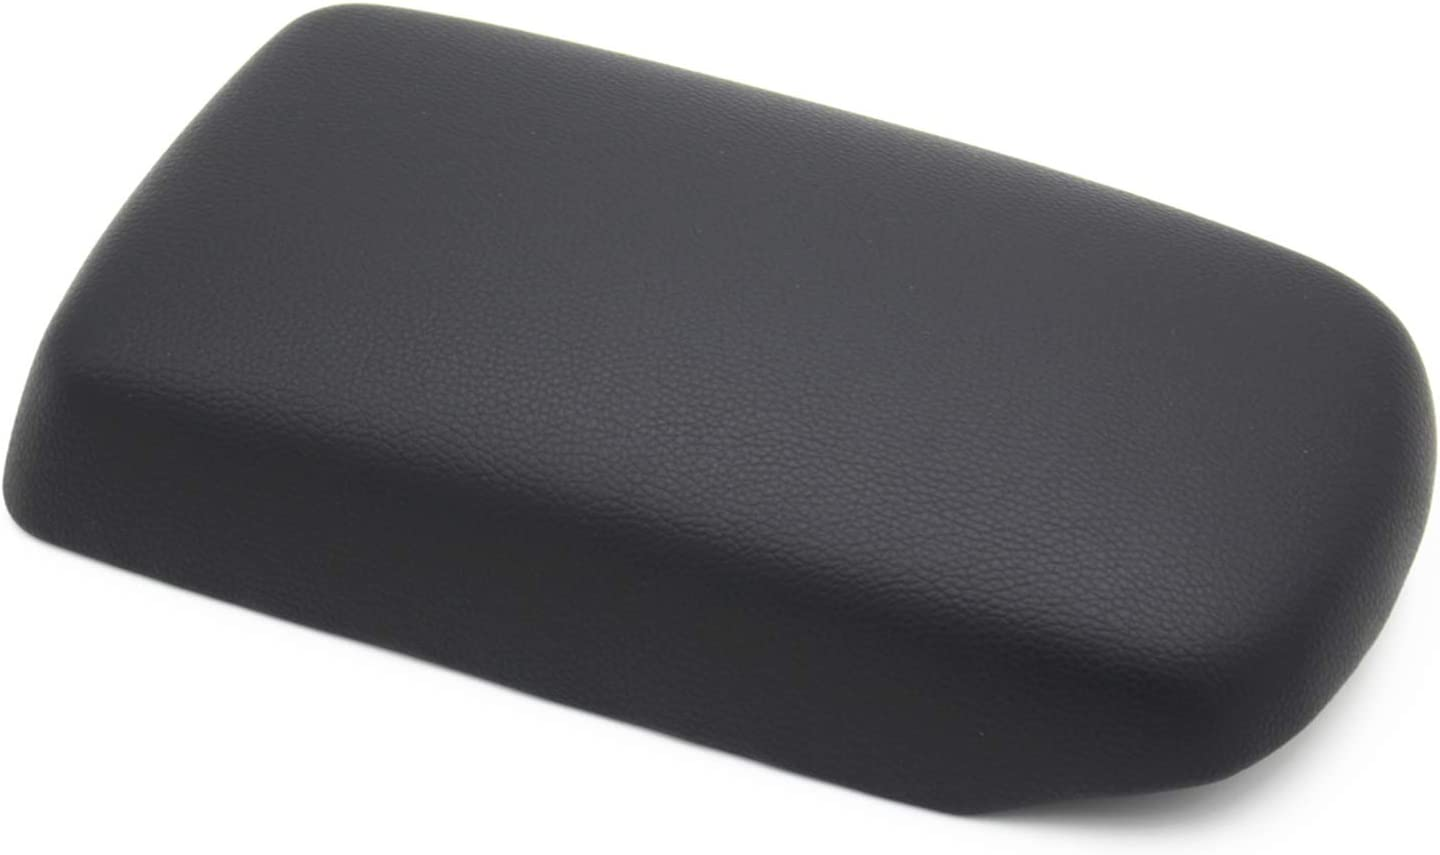 Ezzy Auto Black Center Console Lid Suture Cover Console Armrest Lid Box fit for Toyota Corolla